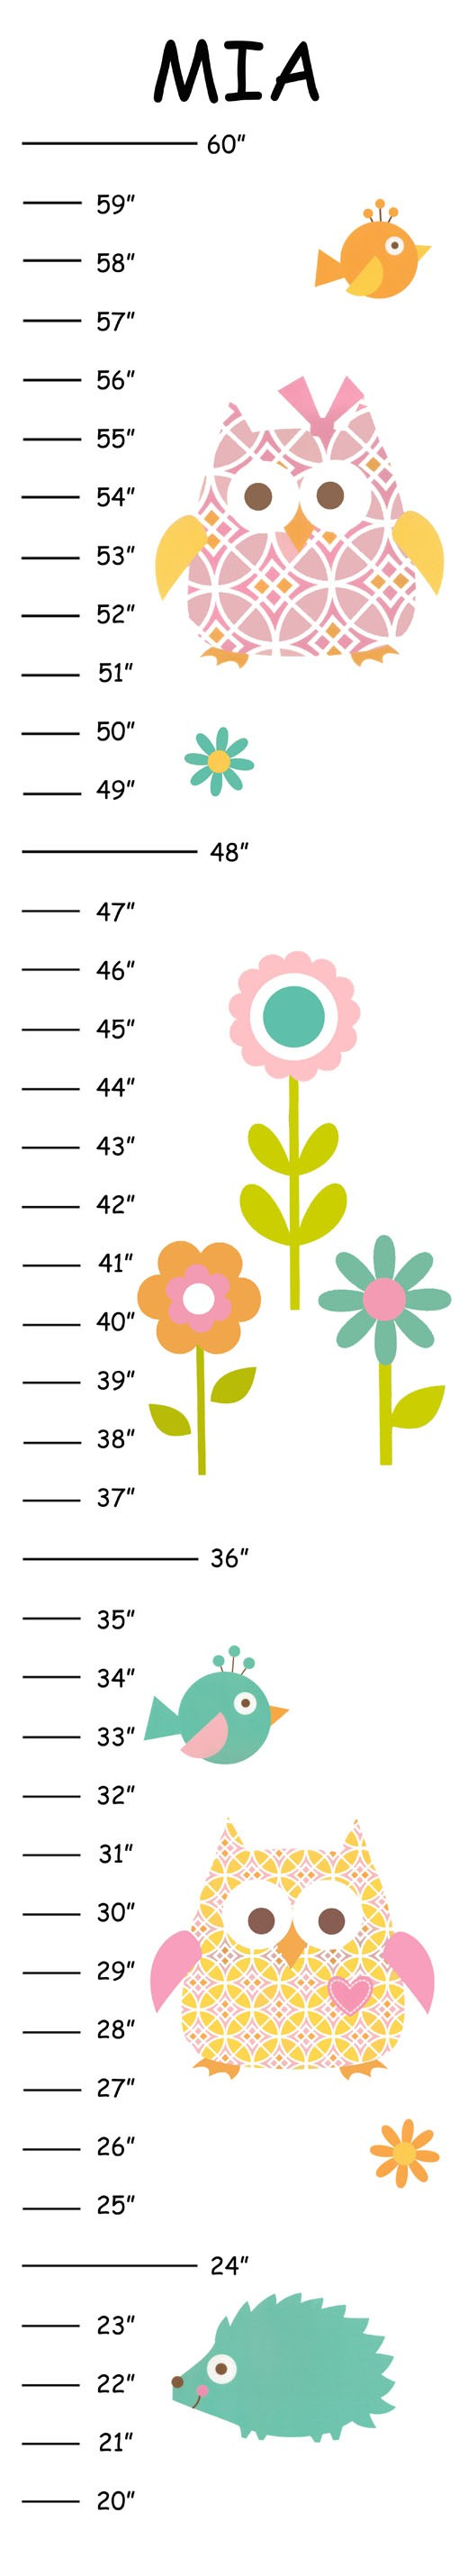 Personalized Happy Tree Owl Canvas Growth Chart By 123growwithme 21 00 Printable Chart Growth Chart Owl Canvas